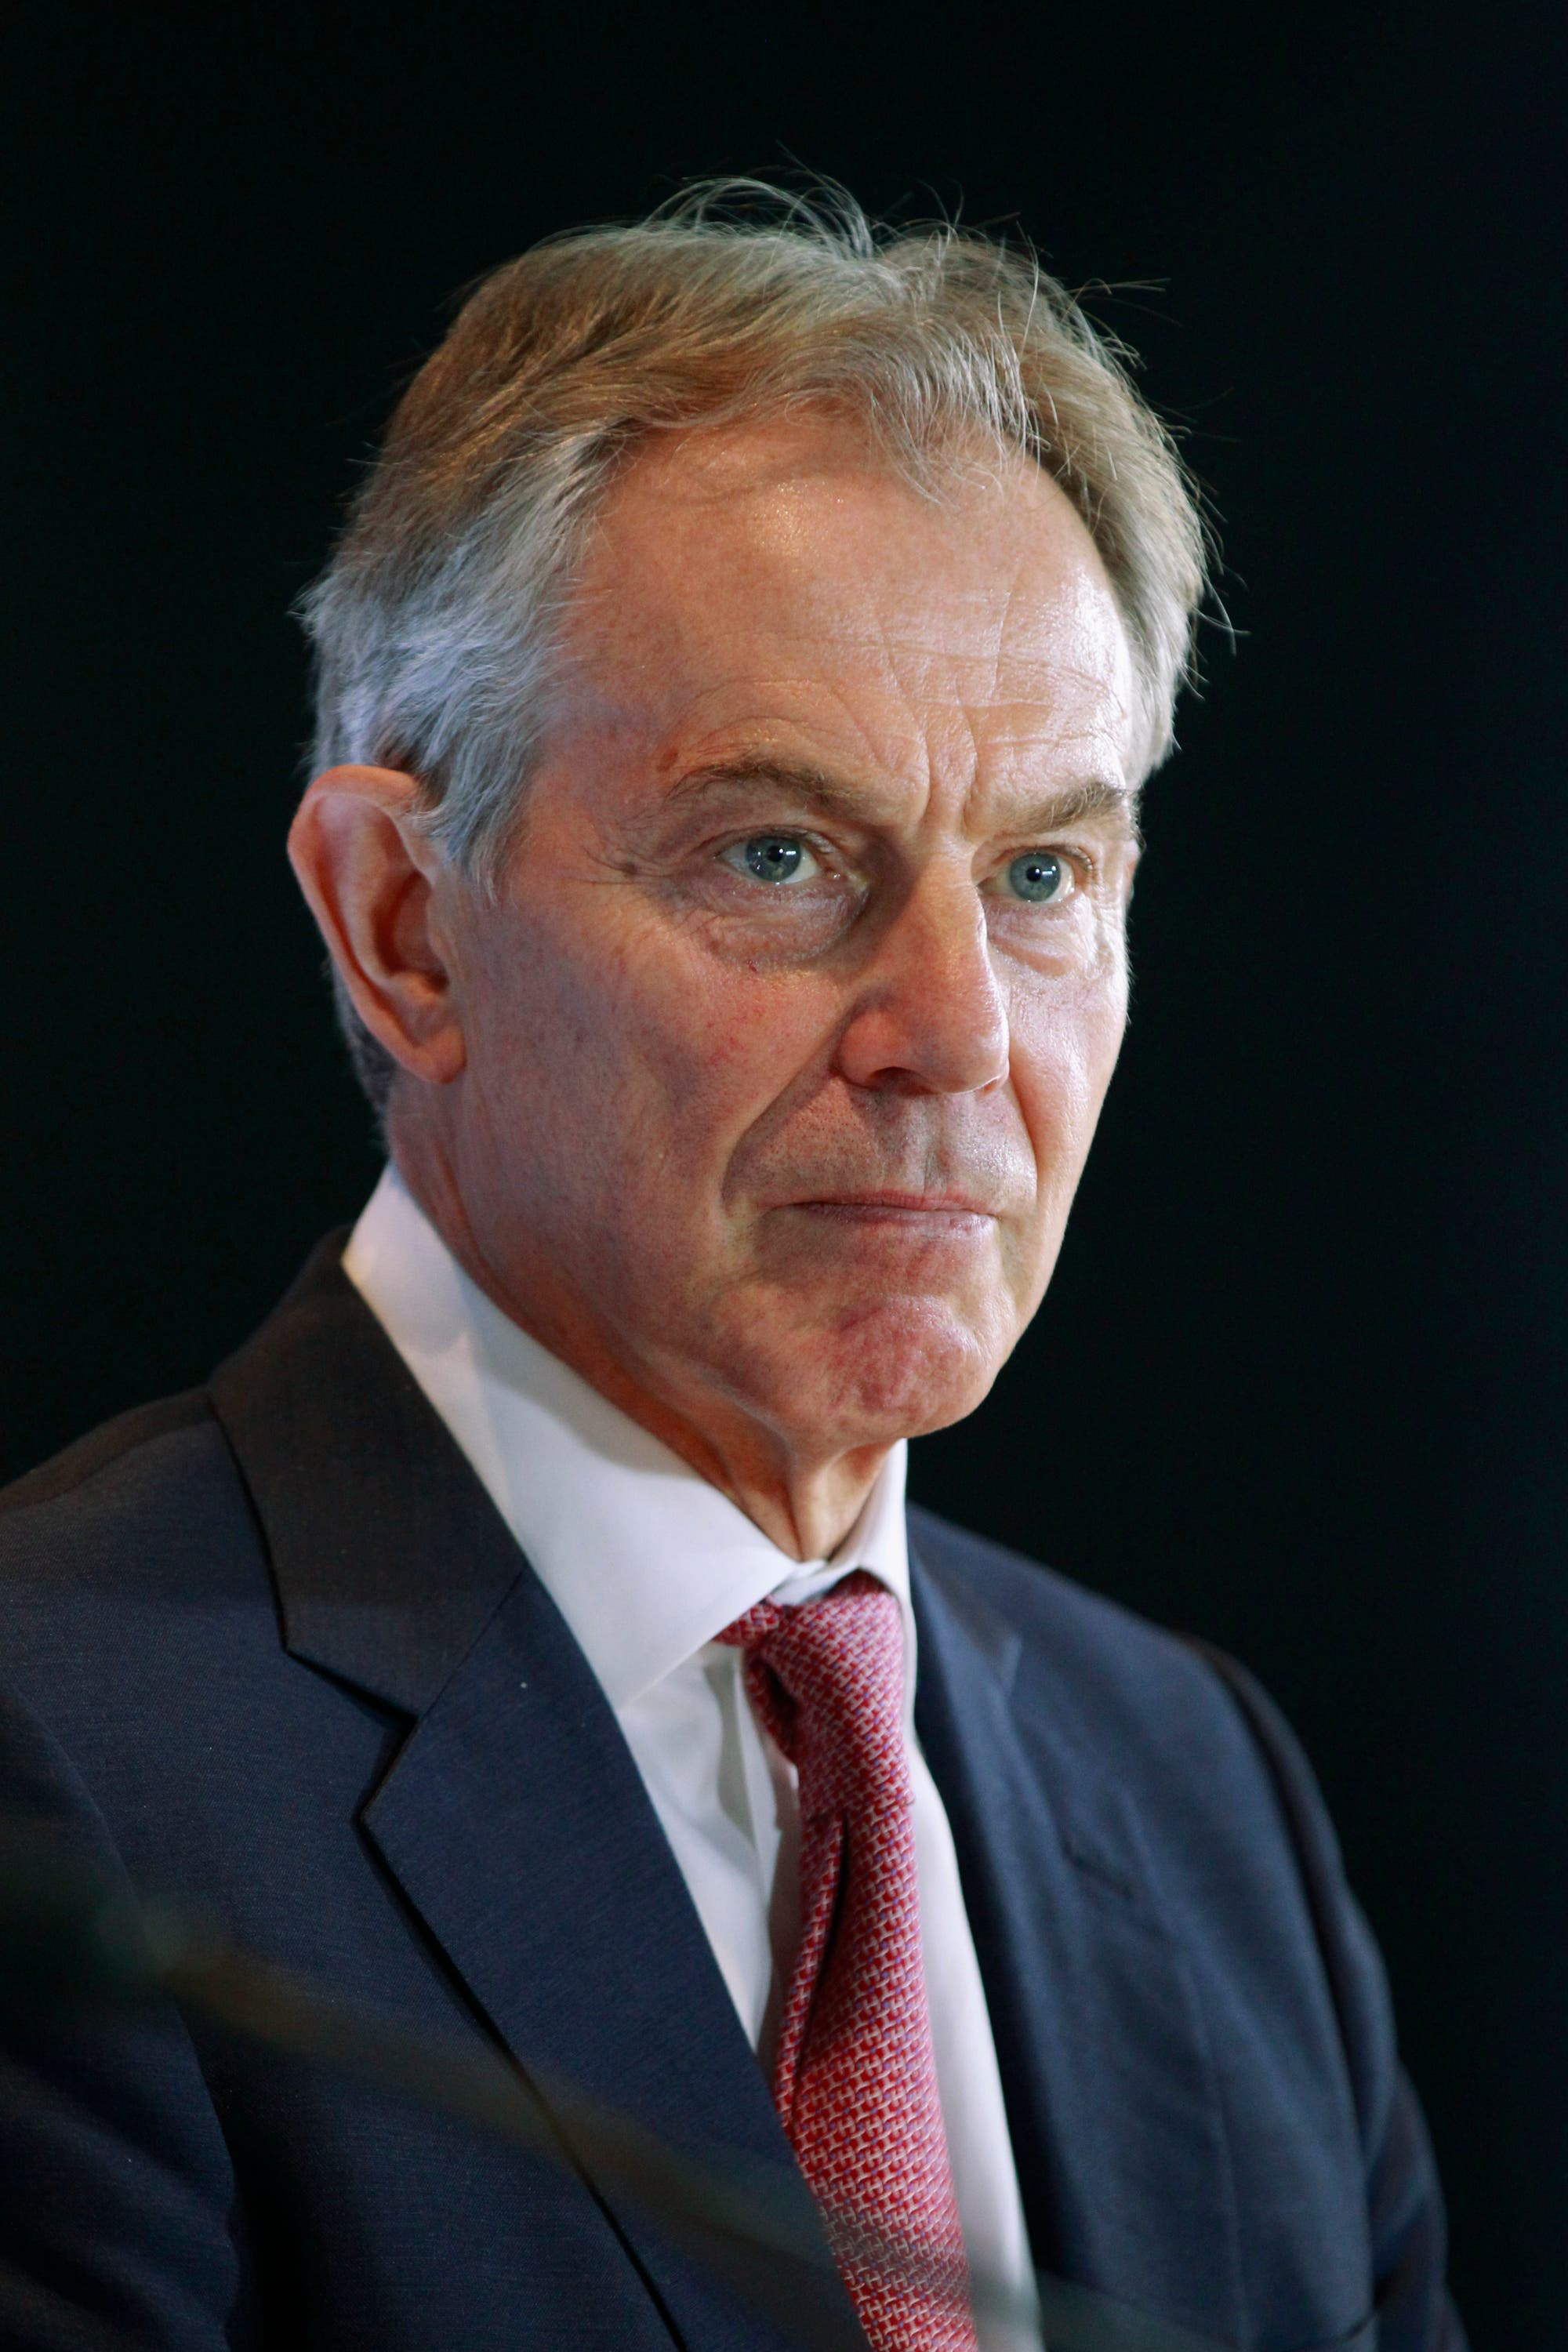 Quartet Representative and former British prime minister Tony Blair takes part in a news conference in Ottawa, Oct. 17, 2013. (Reuters)